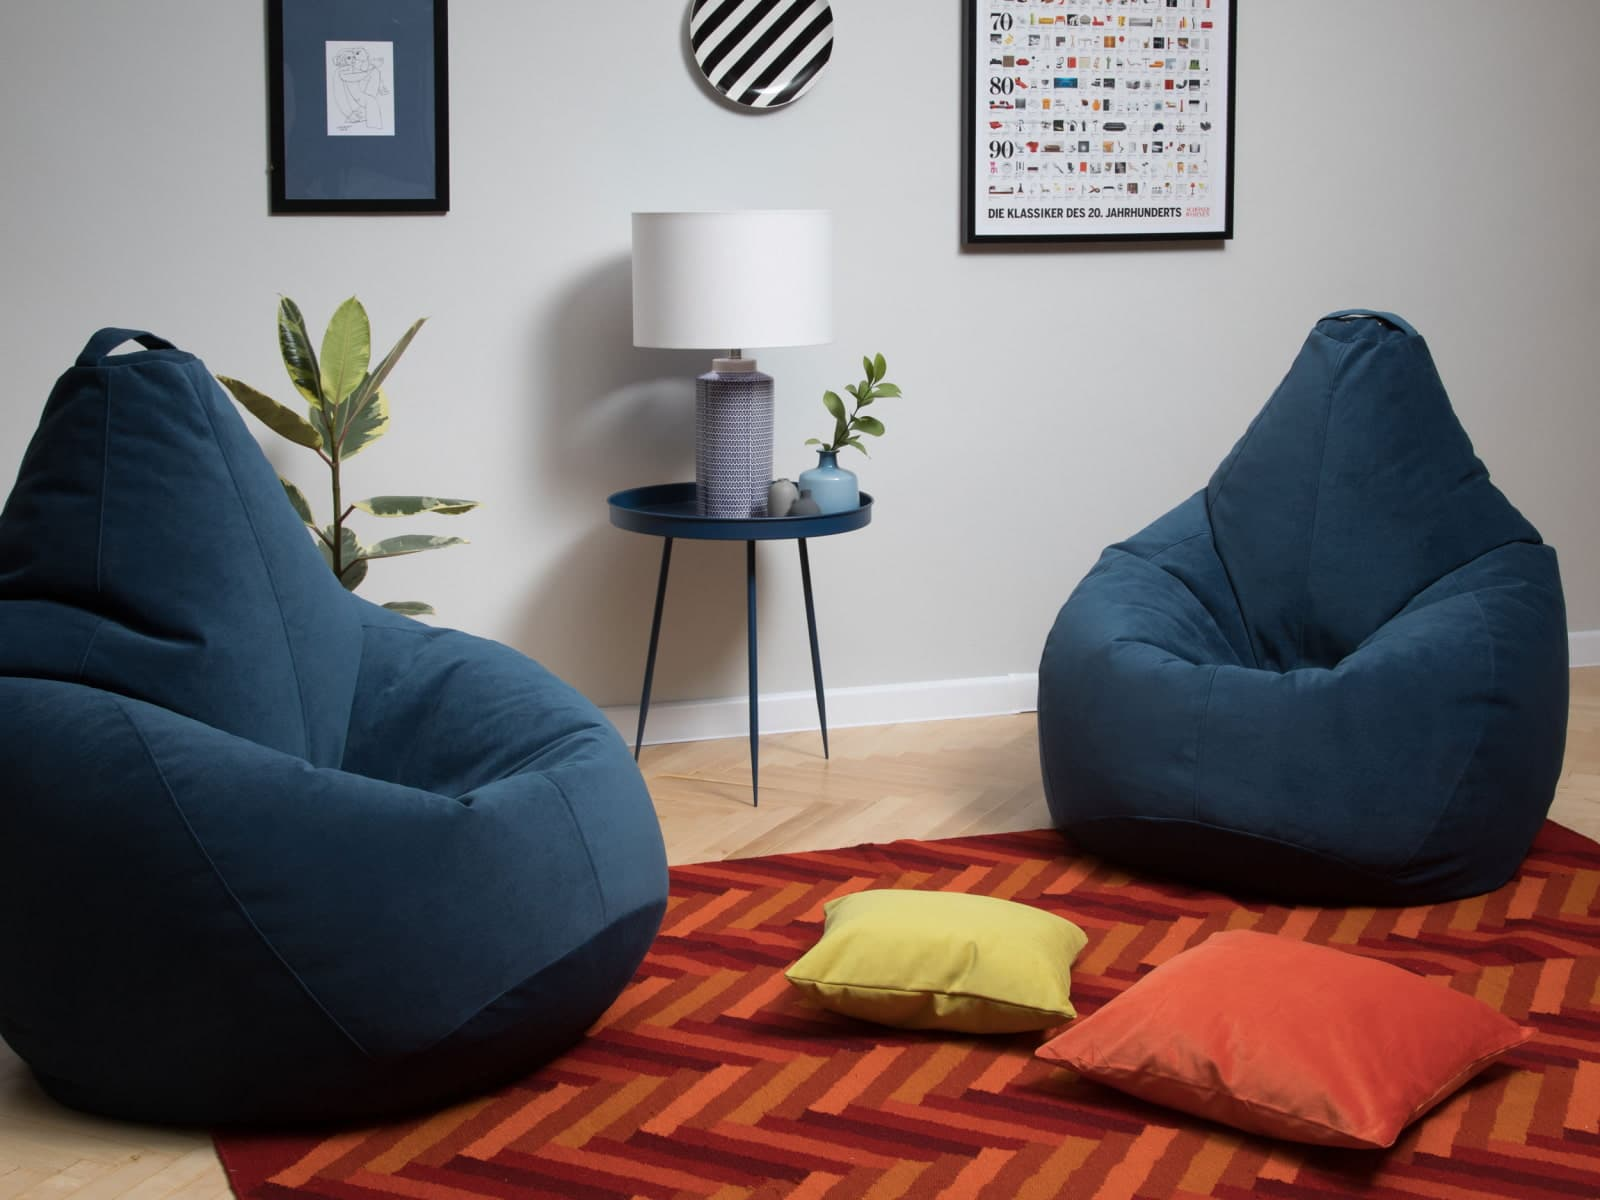 Blue bean bag chairs, red carpet and pictures for wall decoration